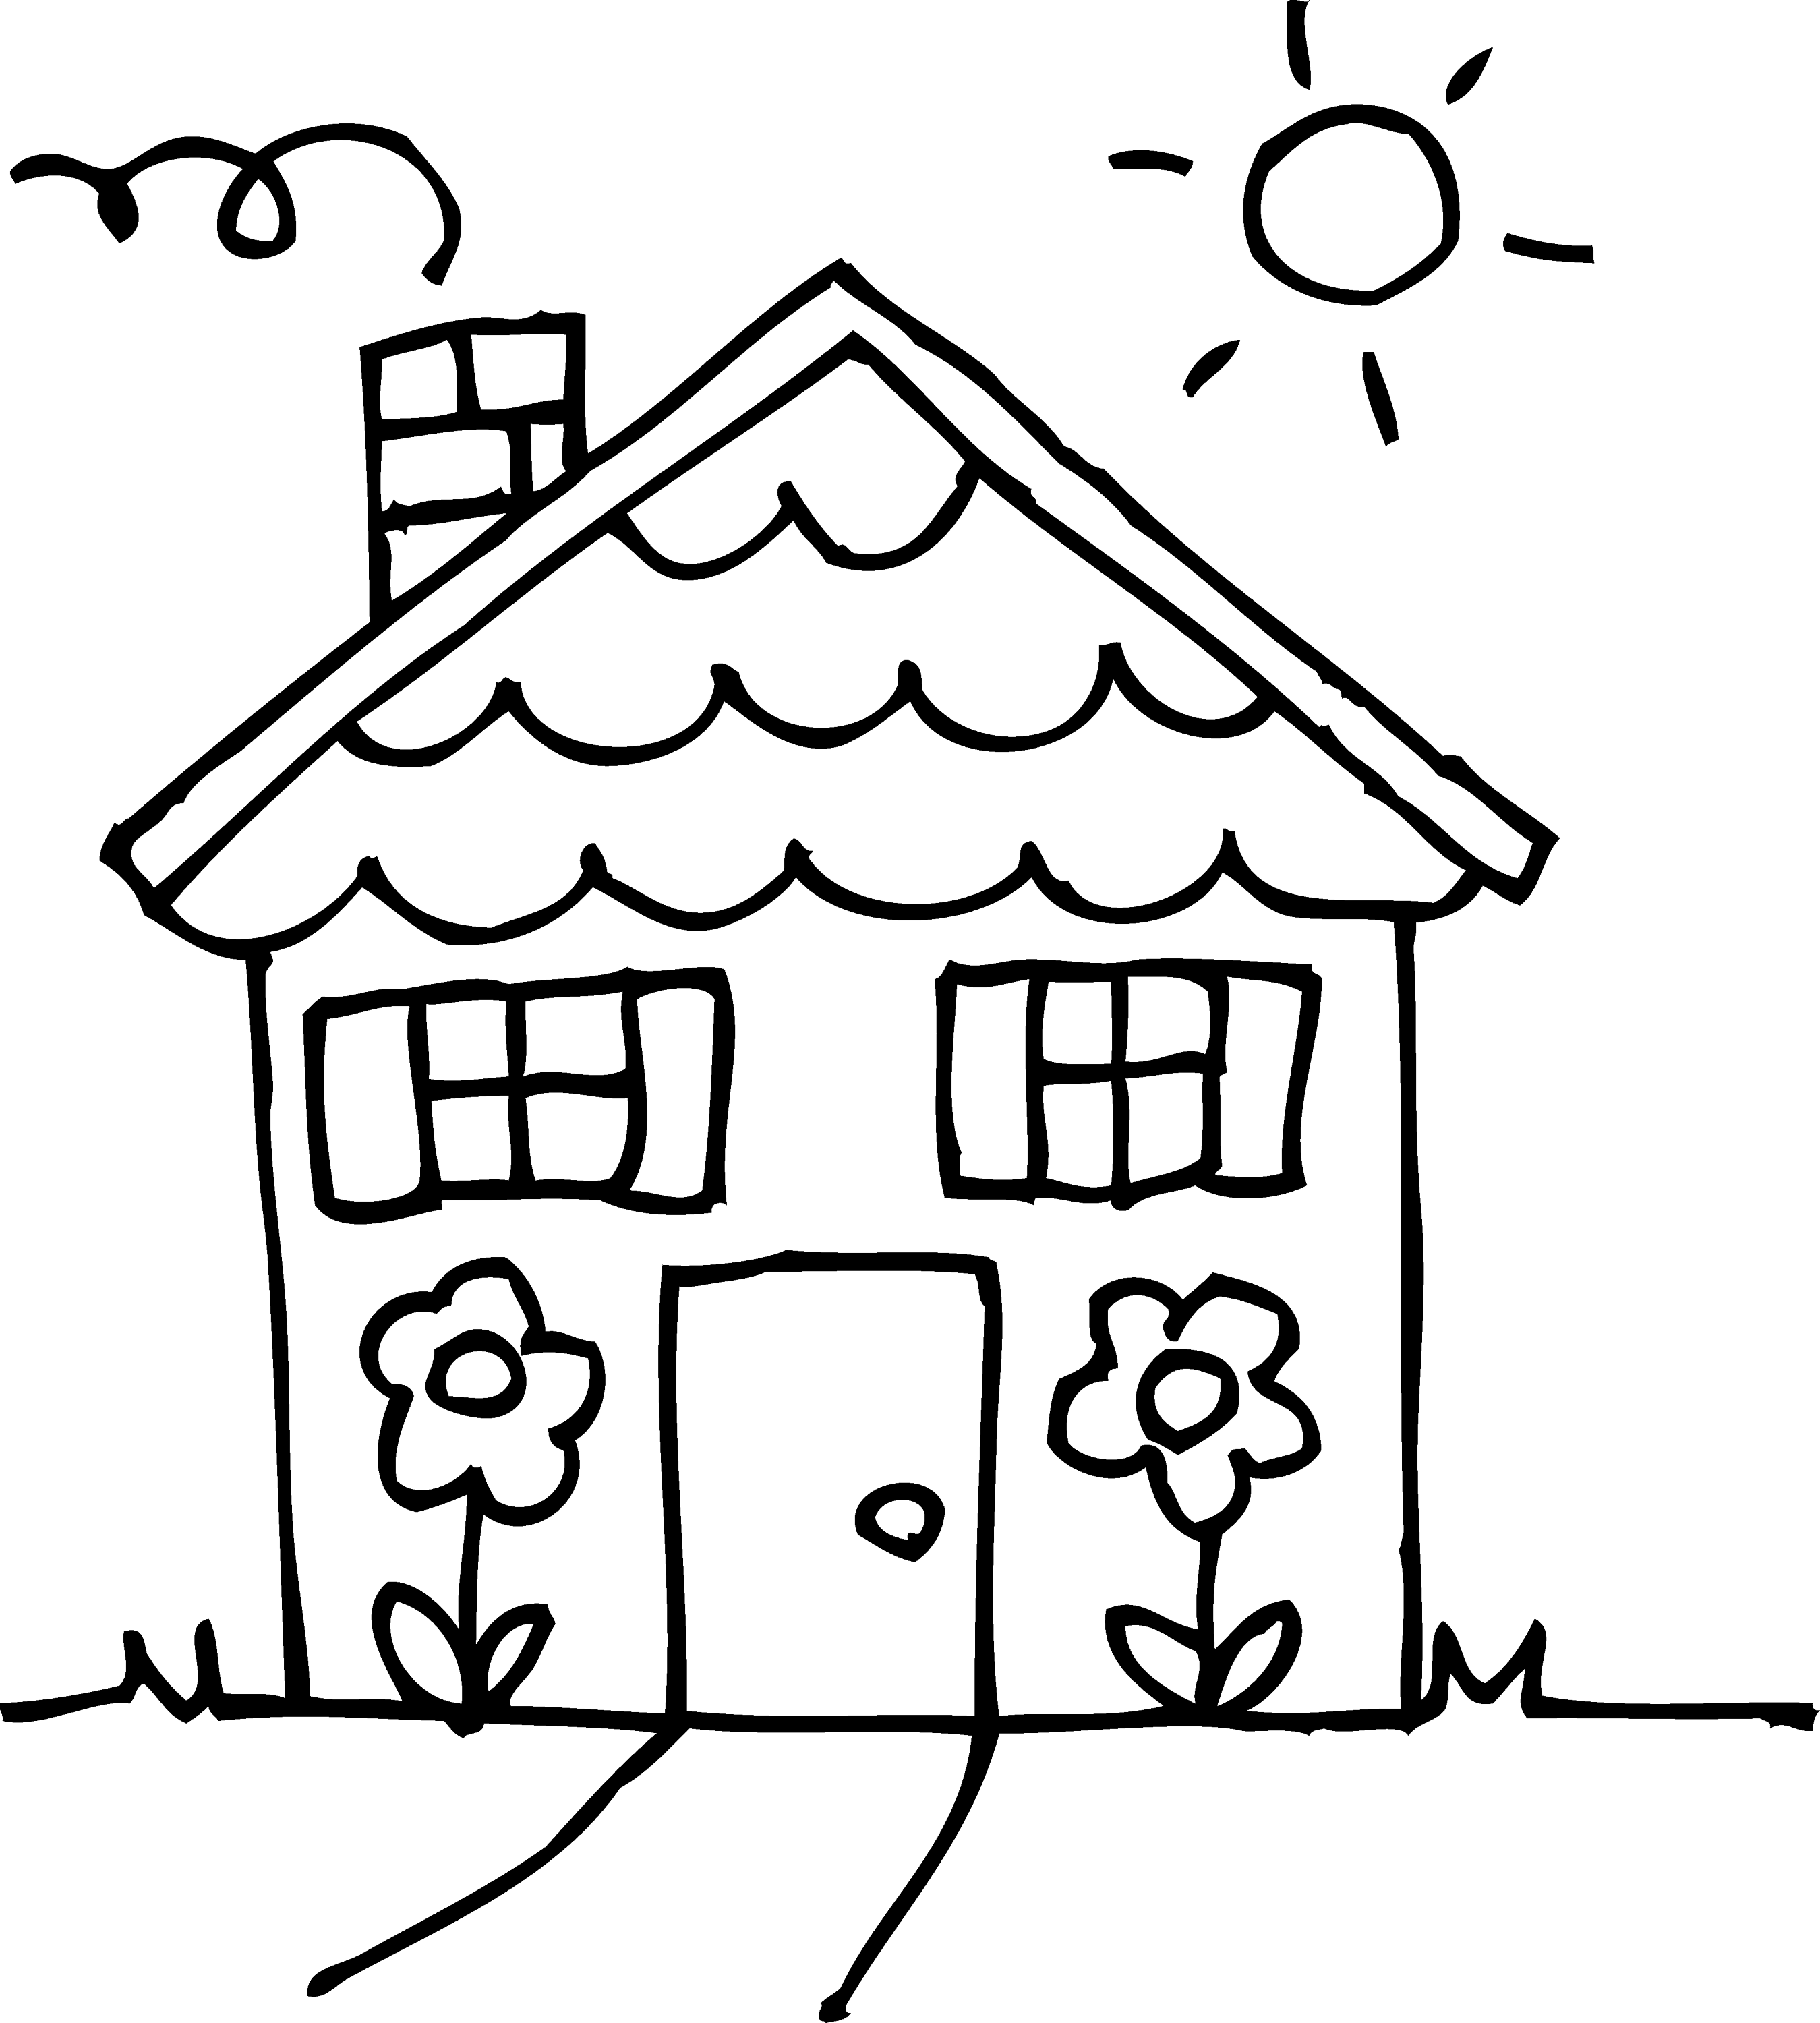 coloring pages houses sunny day house coloring page free clip art coloring pages houses